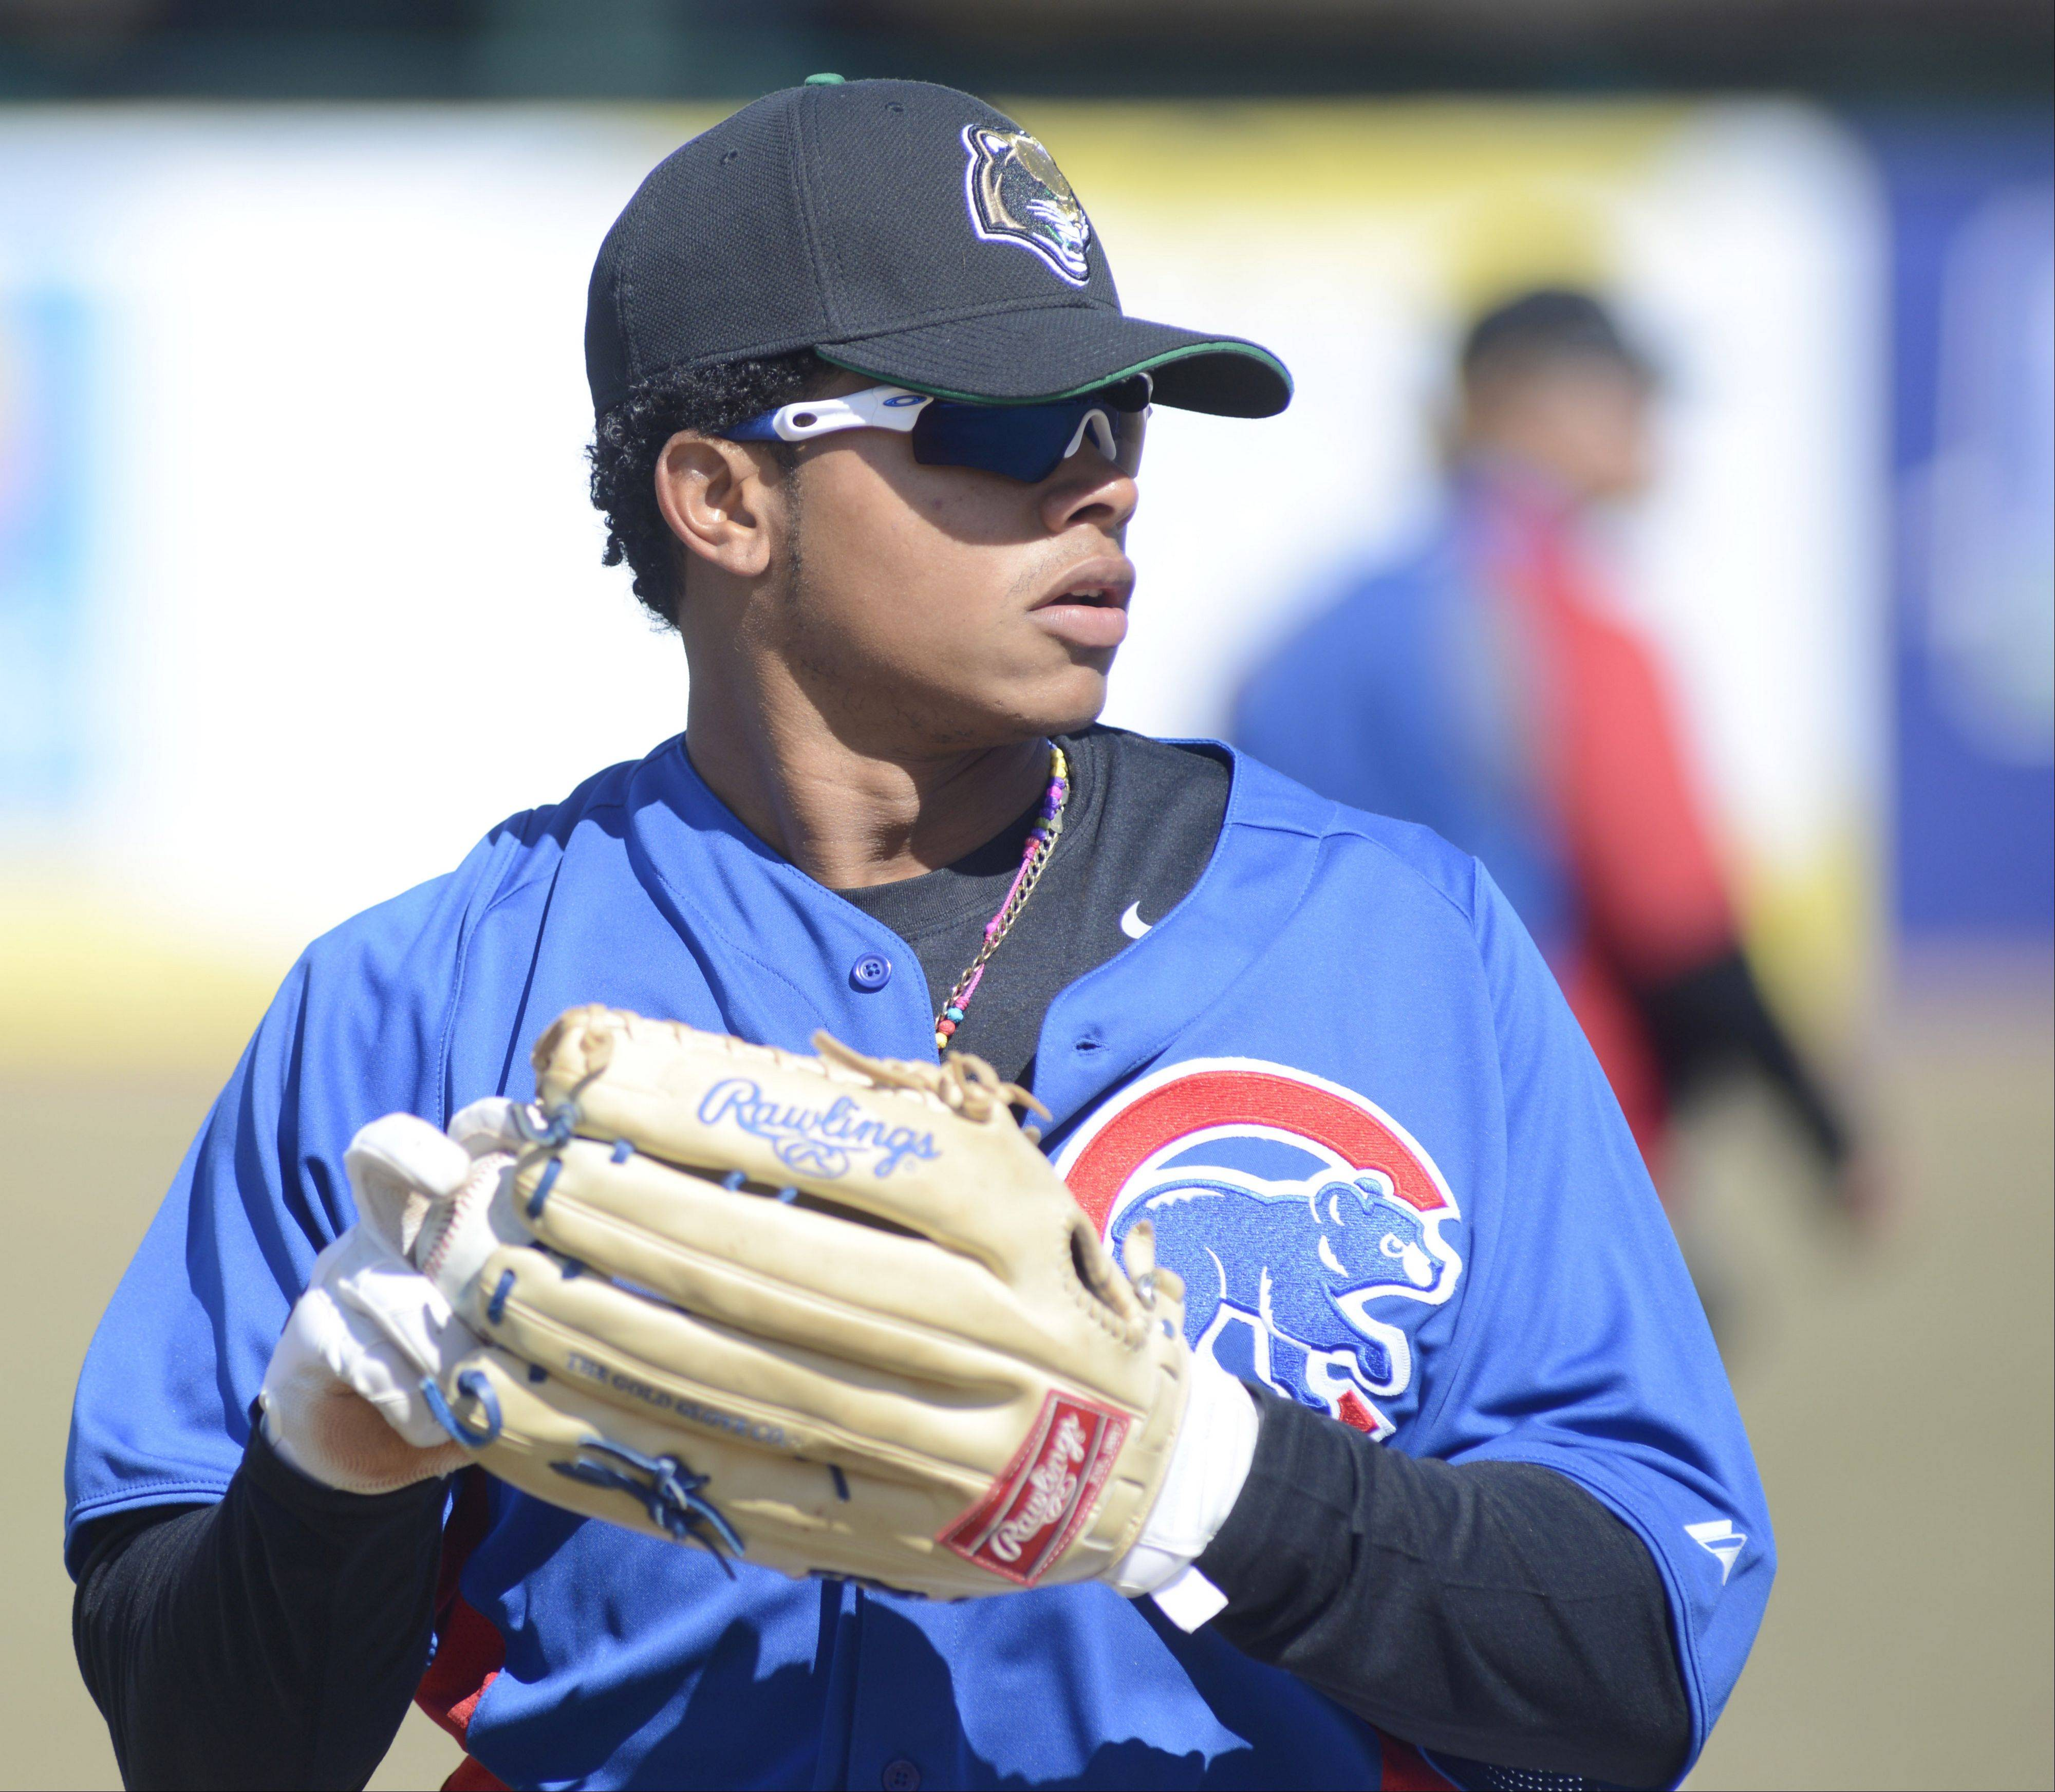 The Kane County Cougars' Oliver Zapata, a speedy outfielder, is part of the 26-man roster for the Geneva club.